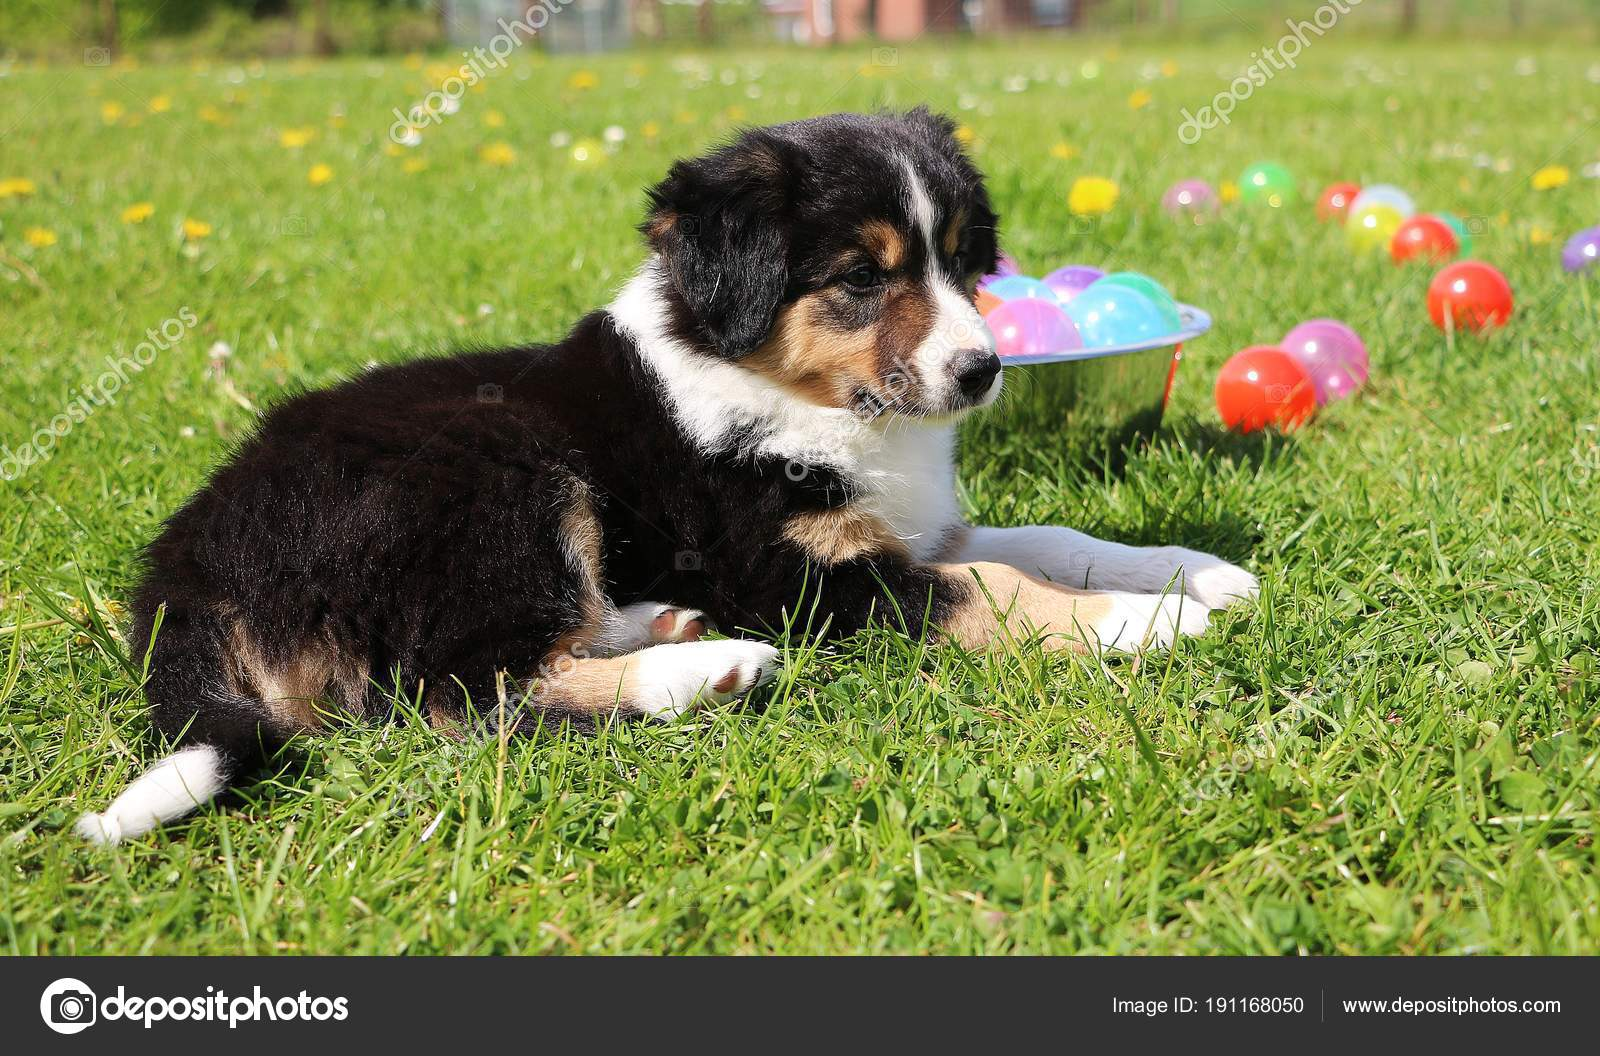 Beautiful Tricolored Border Collie Puppy Lying Garden Colorful Balls Stock Photo C Biancagrueneberg 191168050